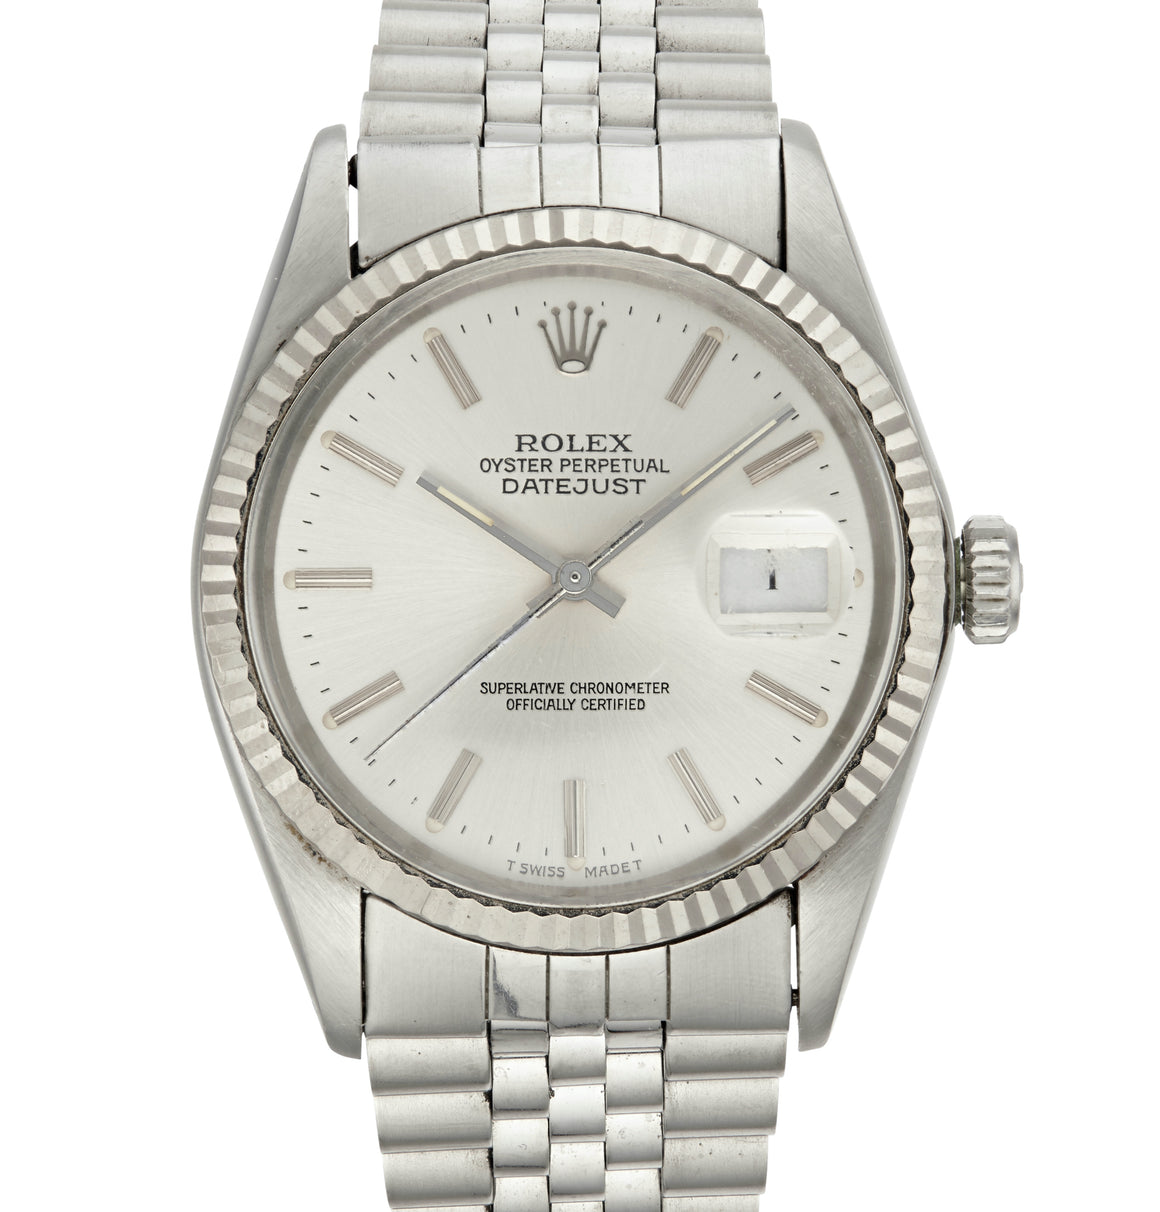 Rolex Datejust Watch Steel with Silver Dial, Ref: 16014 (1984)